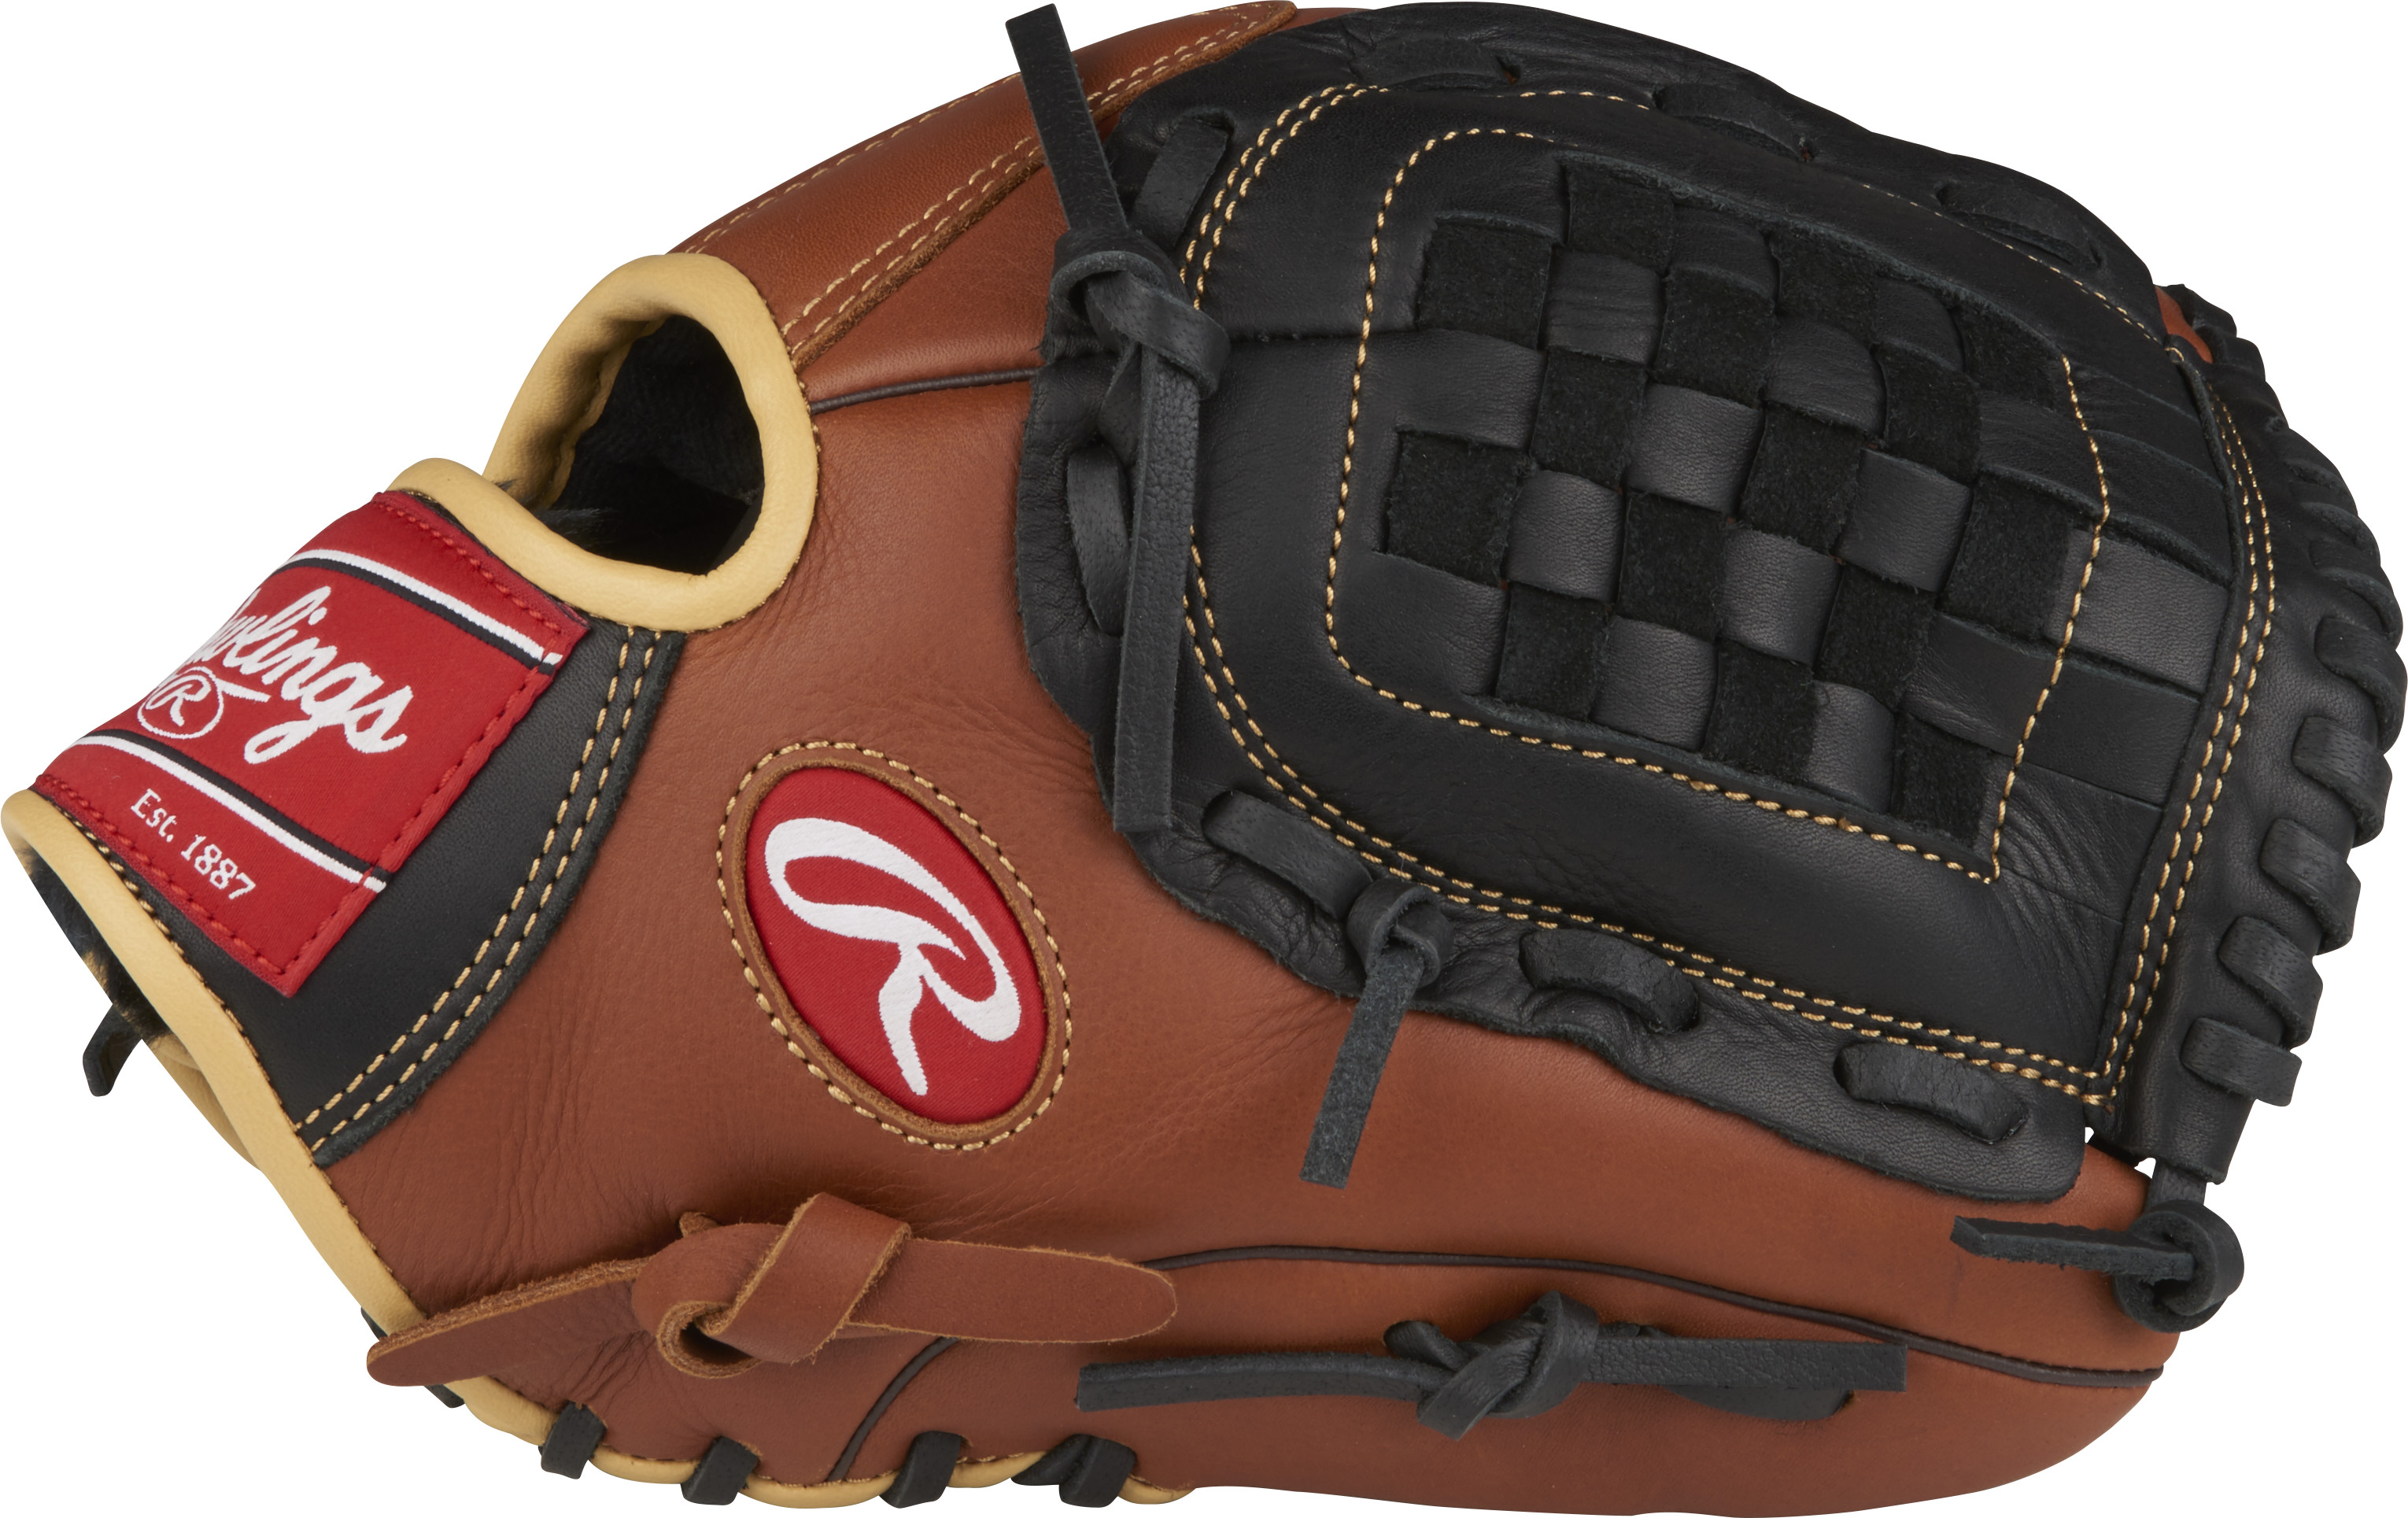 http://www.bestbatdeals.com/images/gloves/rawlings/S1200B-3.jpg